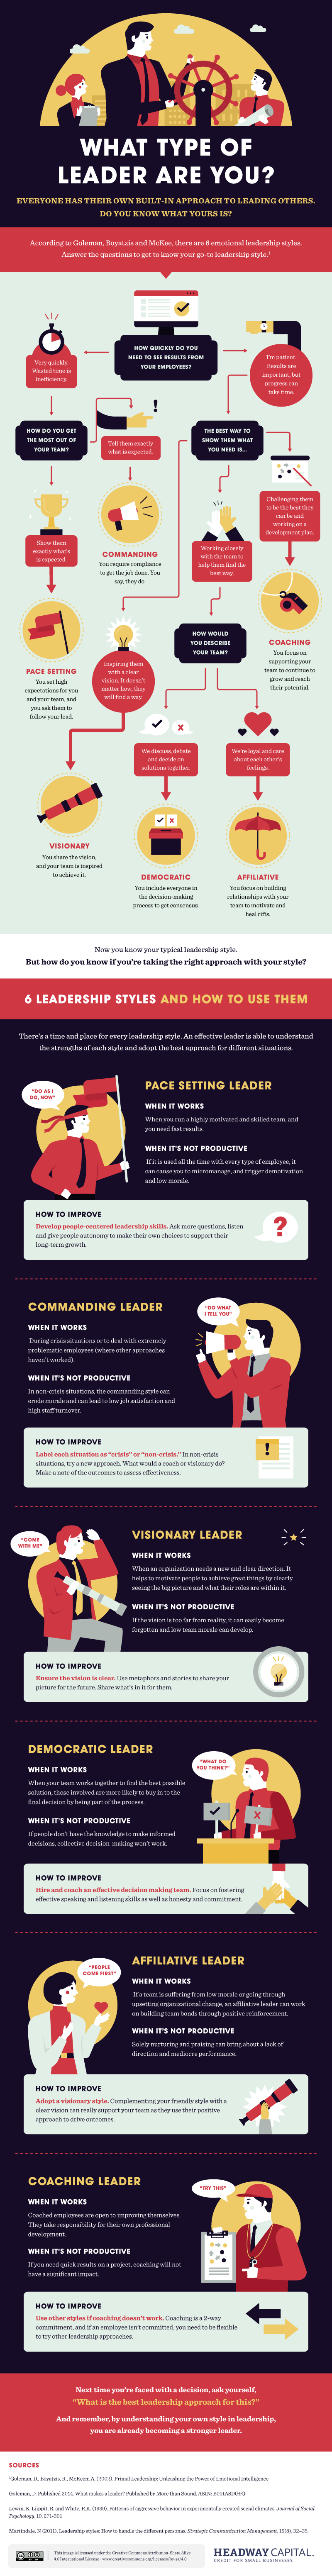 6 Different Leadership Styles - Which One is Yours? - Infographic